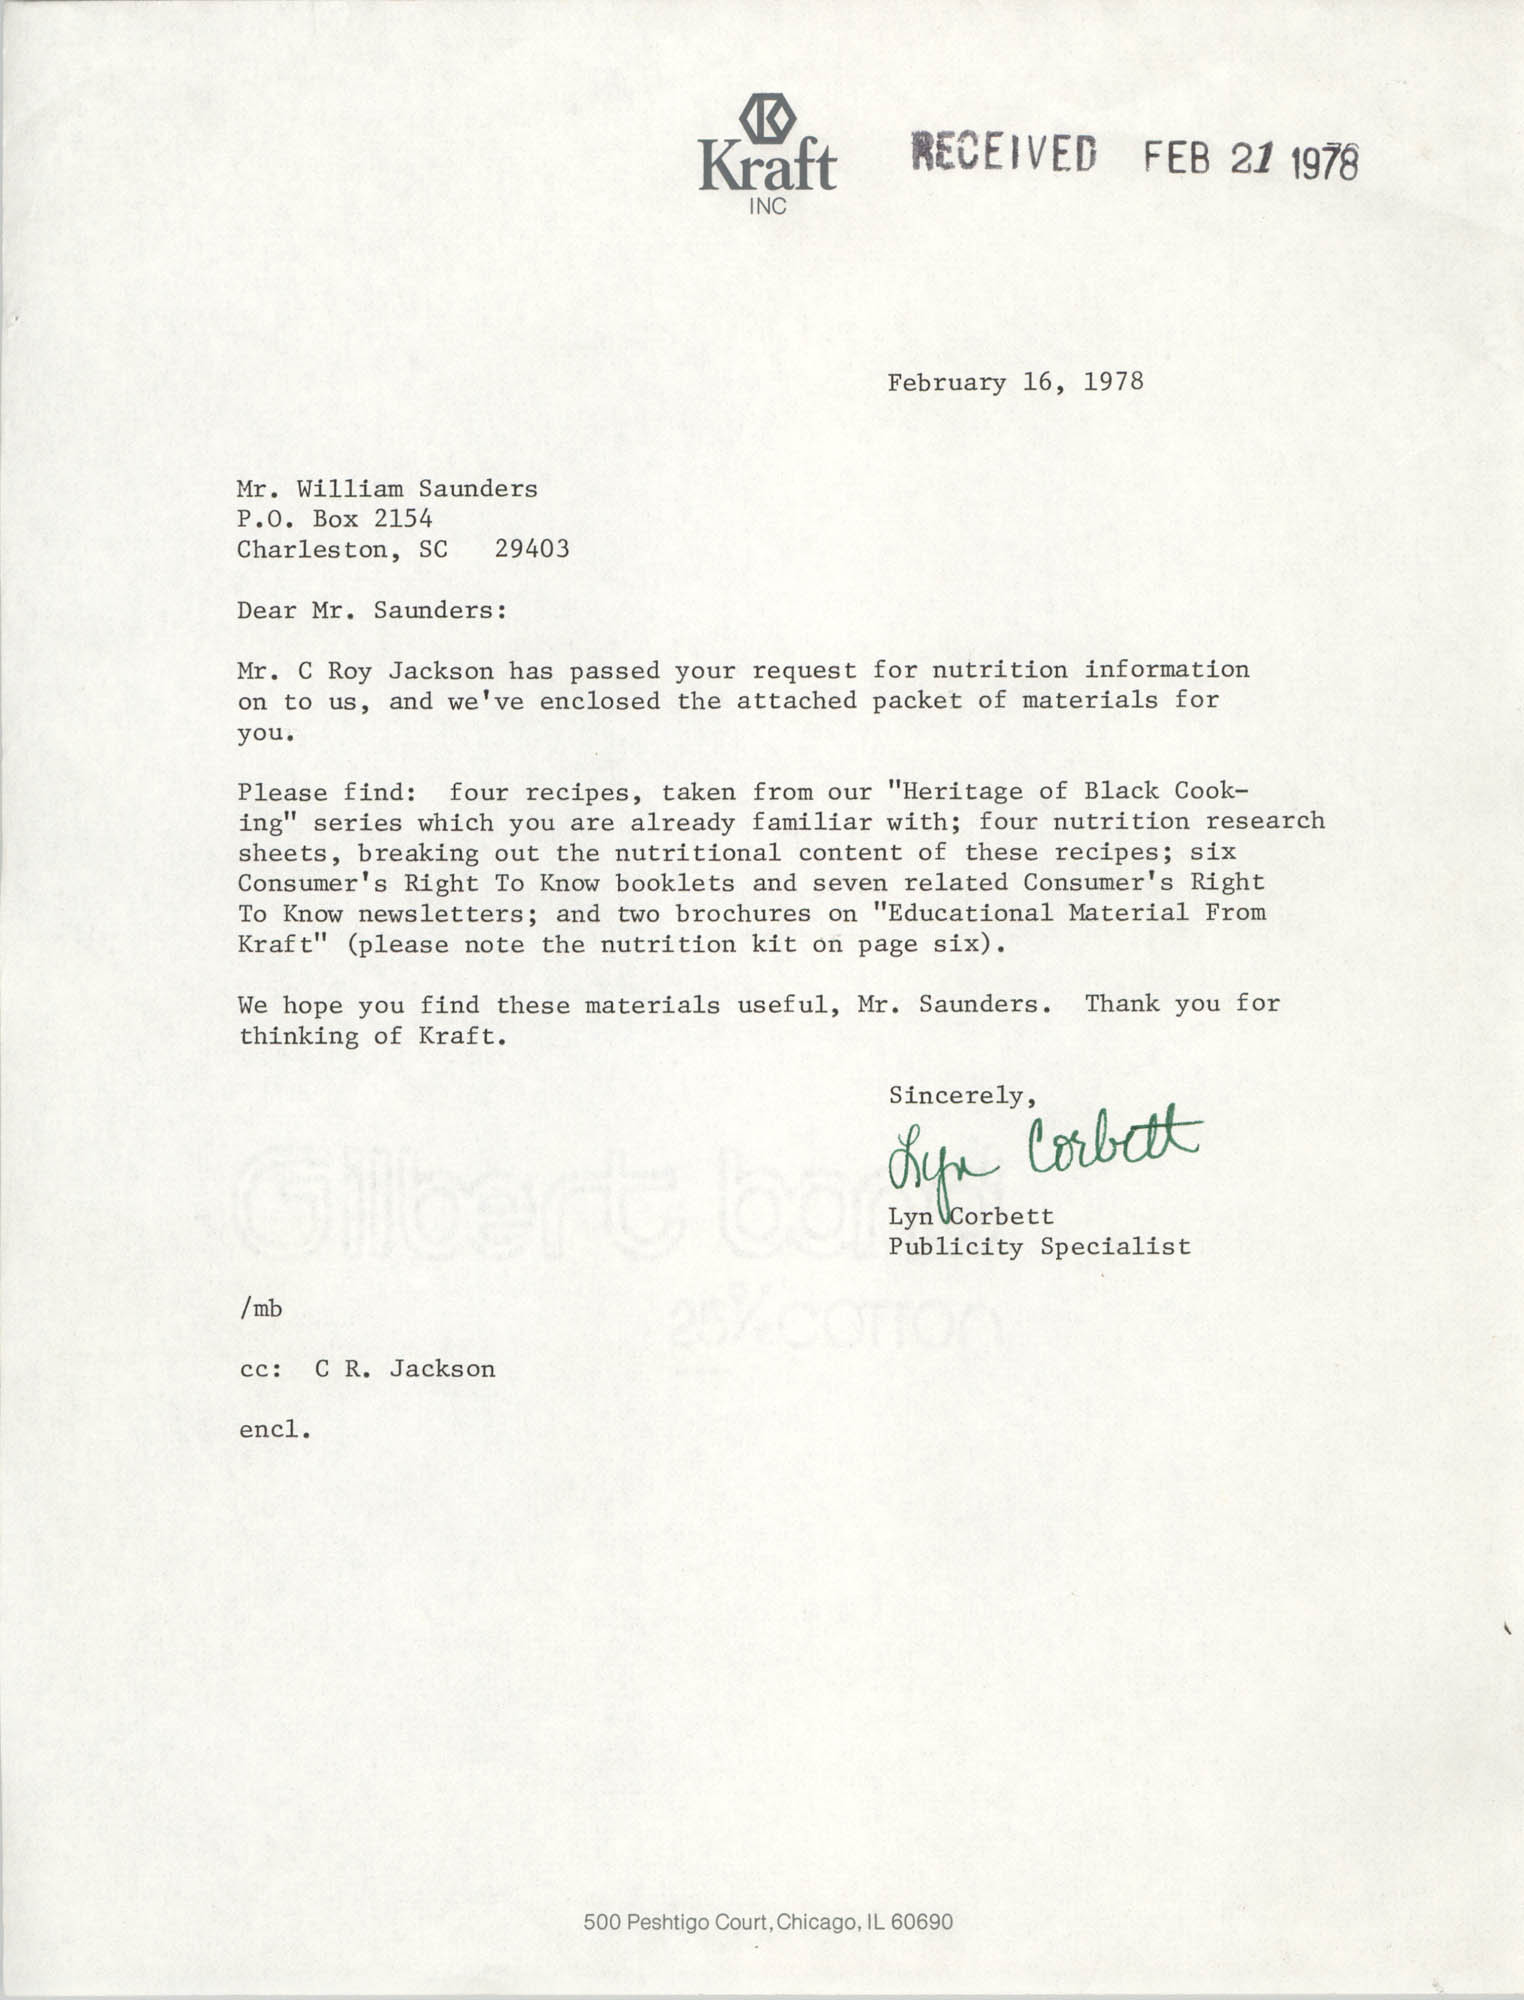 Letter from Lyn Corbett to William Saunders, February 16, 1978